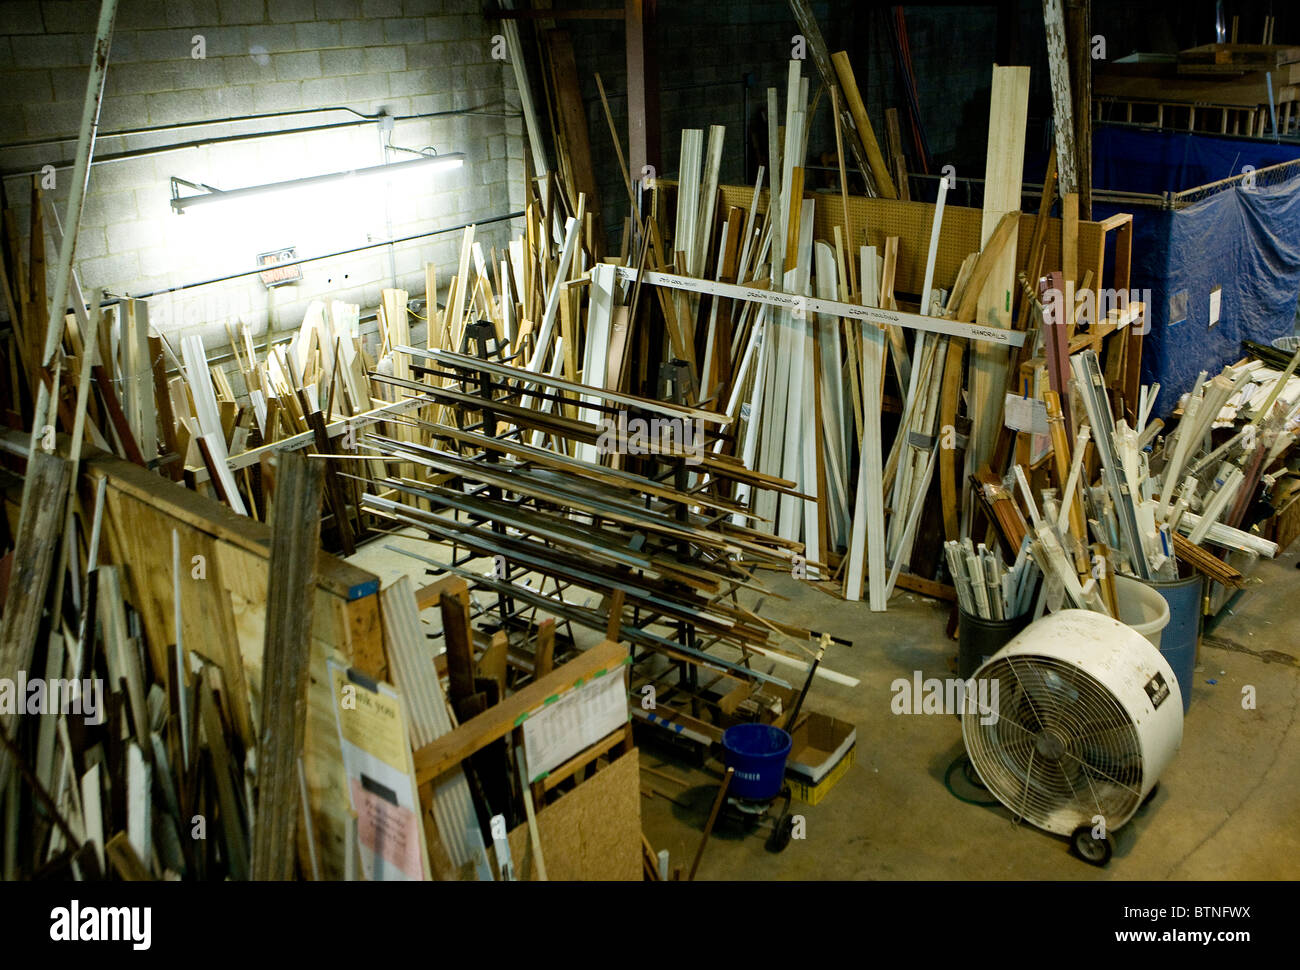 A building materials re-use store. - Stock Image